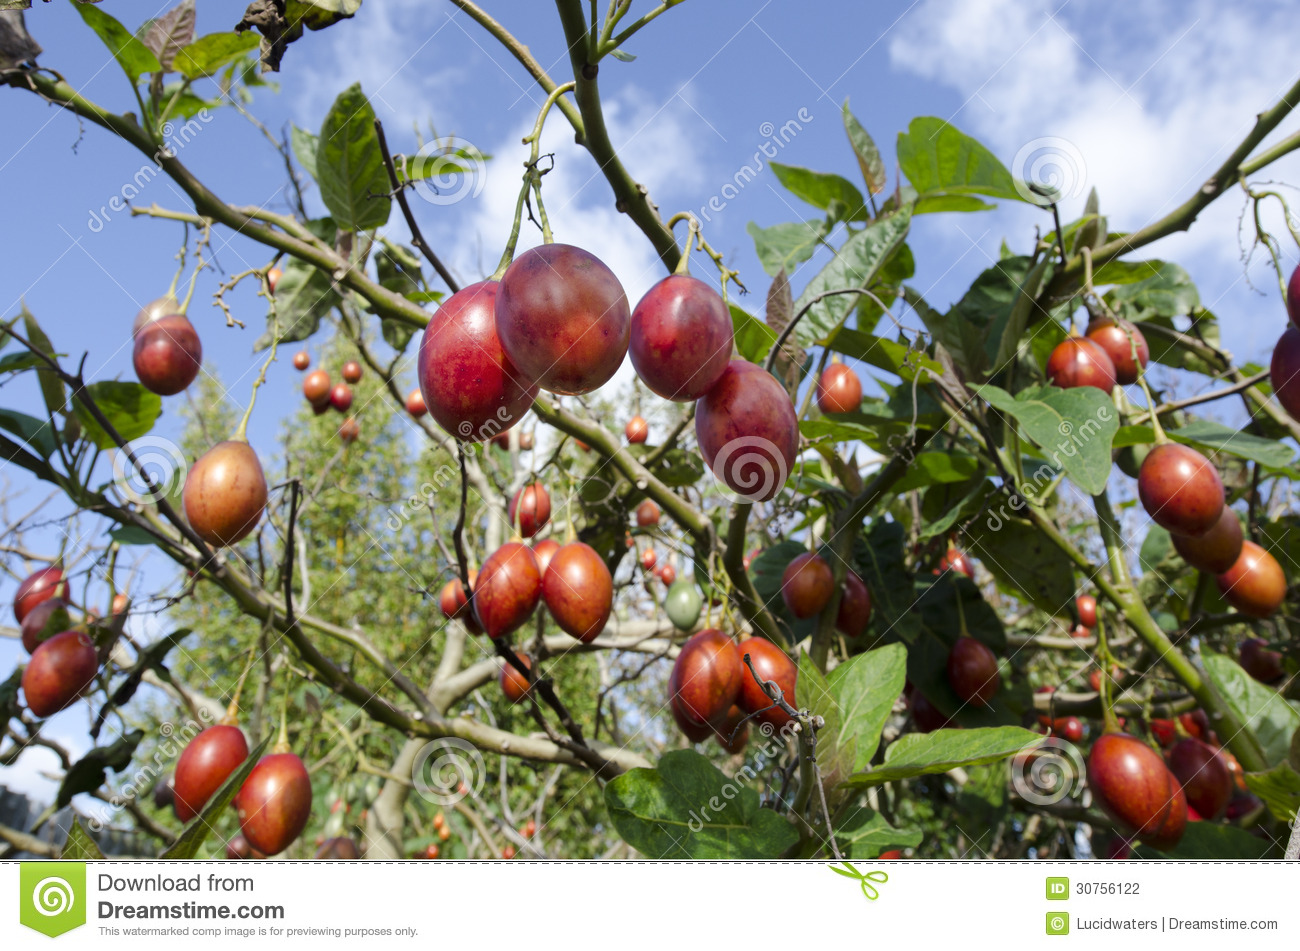 Arbre fruitier de tamarillo photo stock image du for Arbre fruitier